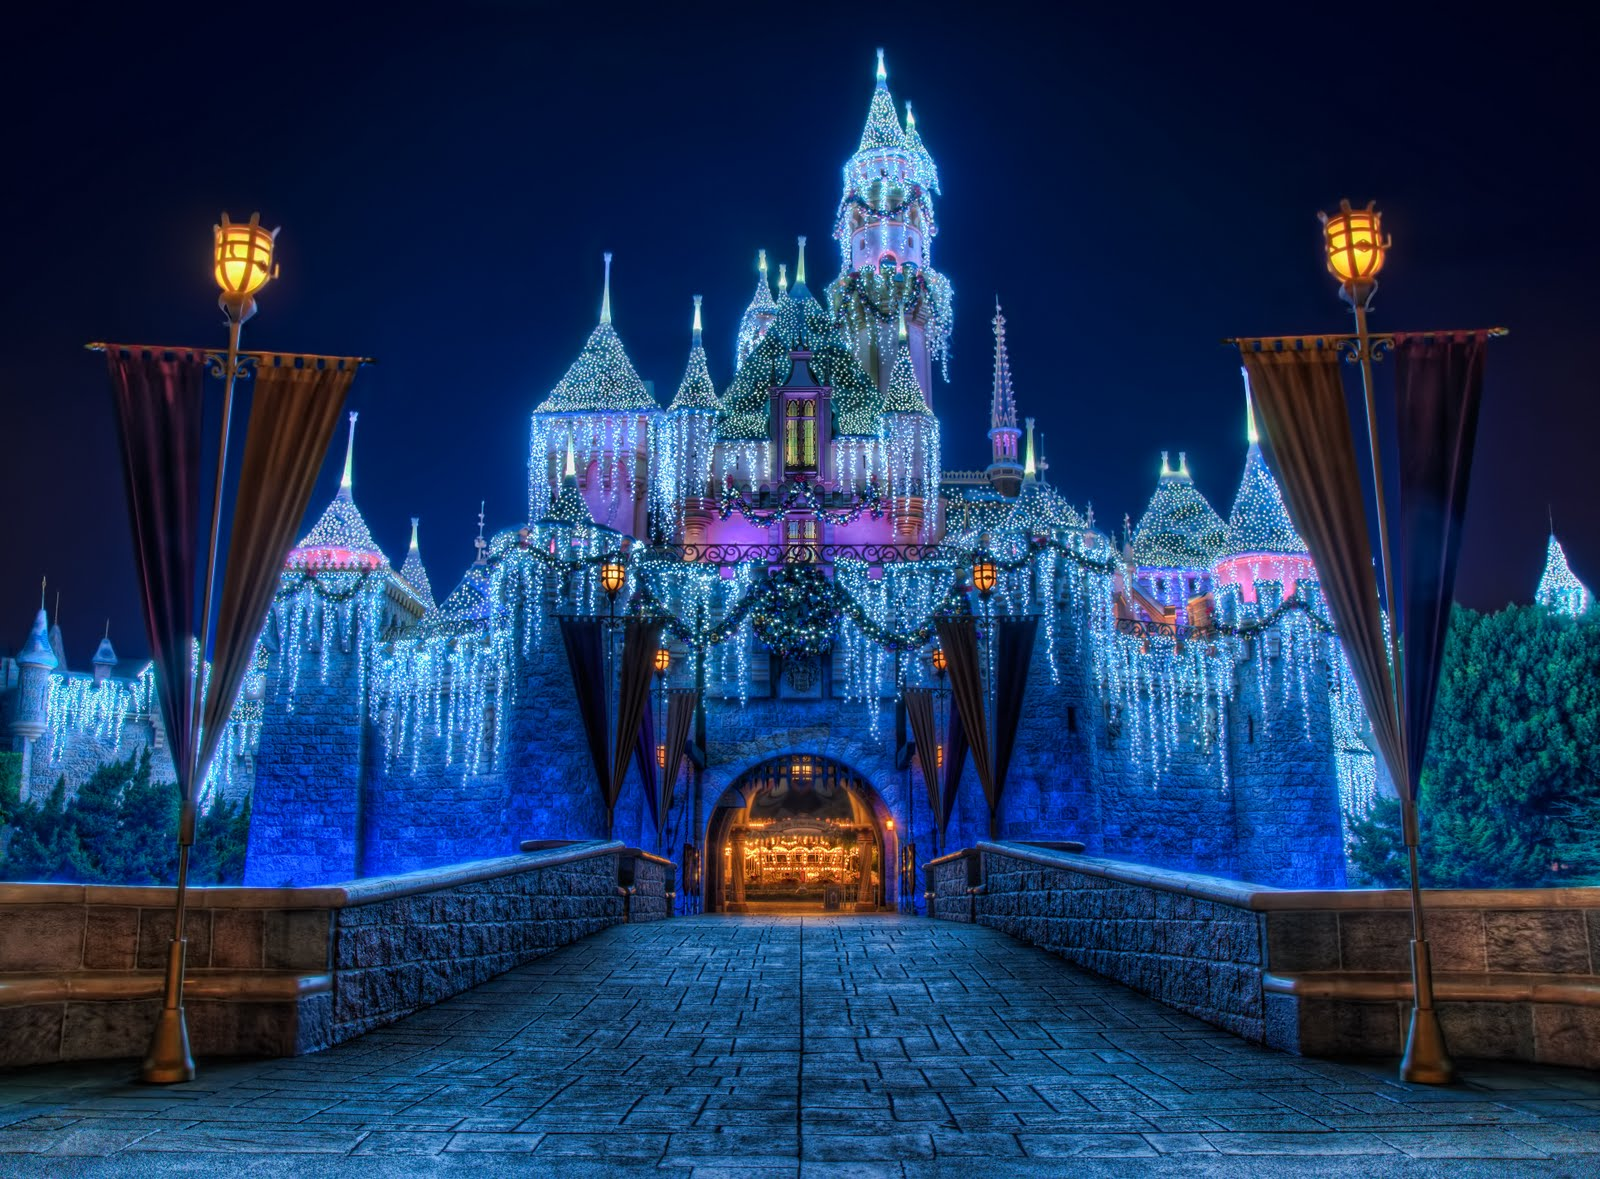 Disney Castle Backgrounds wallpaper Disney Castle Backgrounds hd 1600x1179